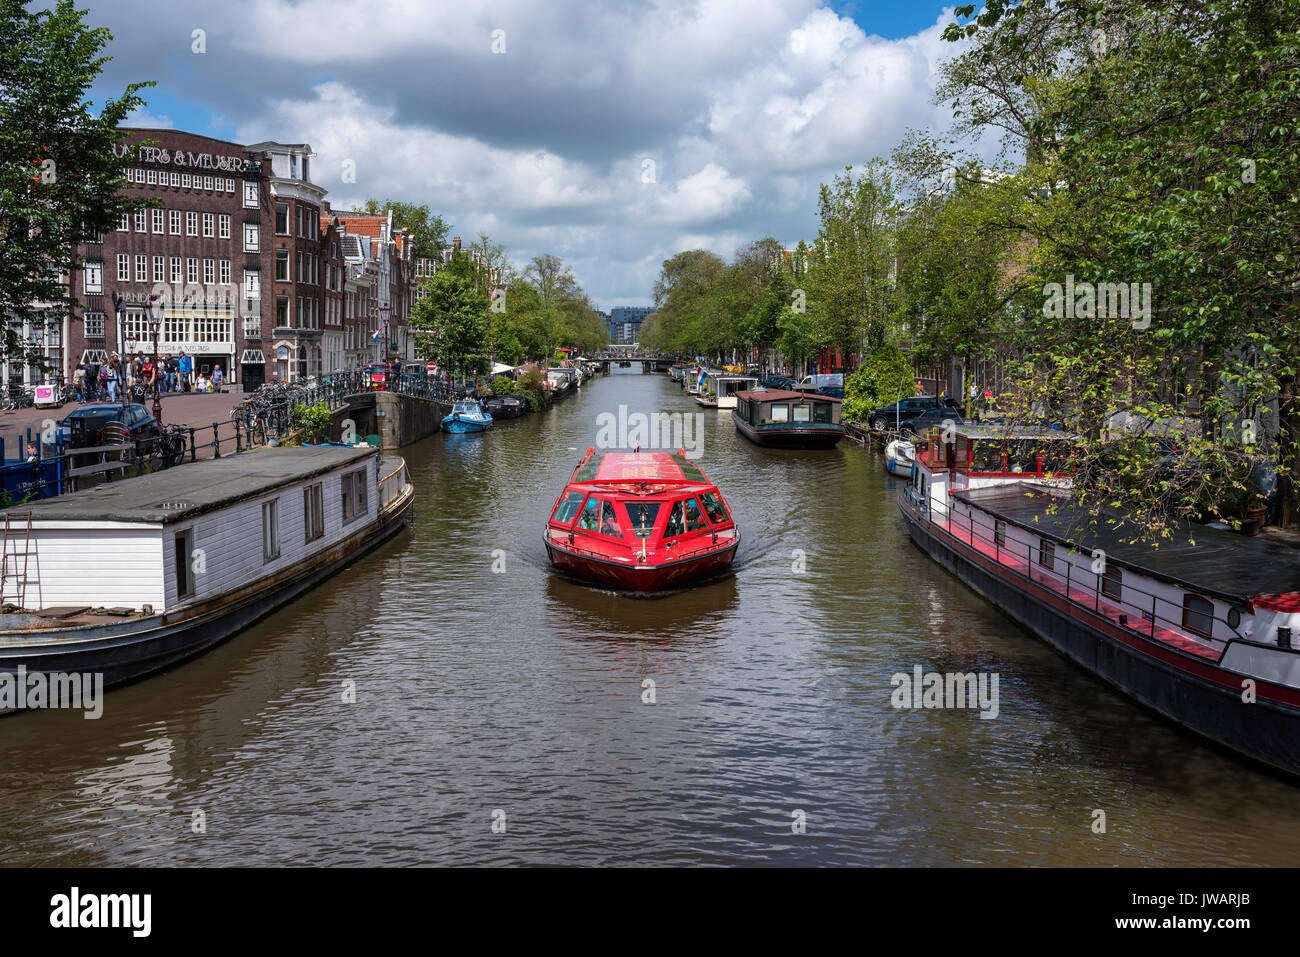 The Prinsengracht with a canal boat, Amsterdam, North Holland, Netherlands - Stock Image